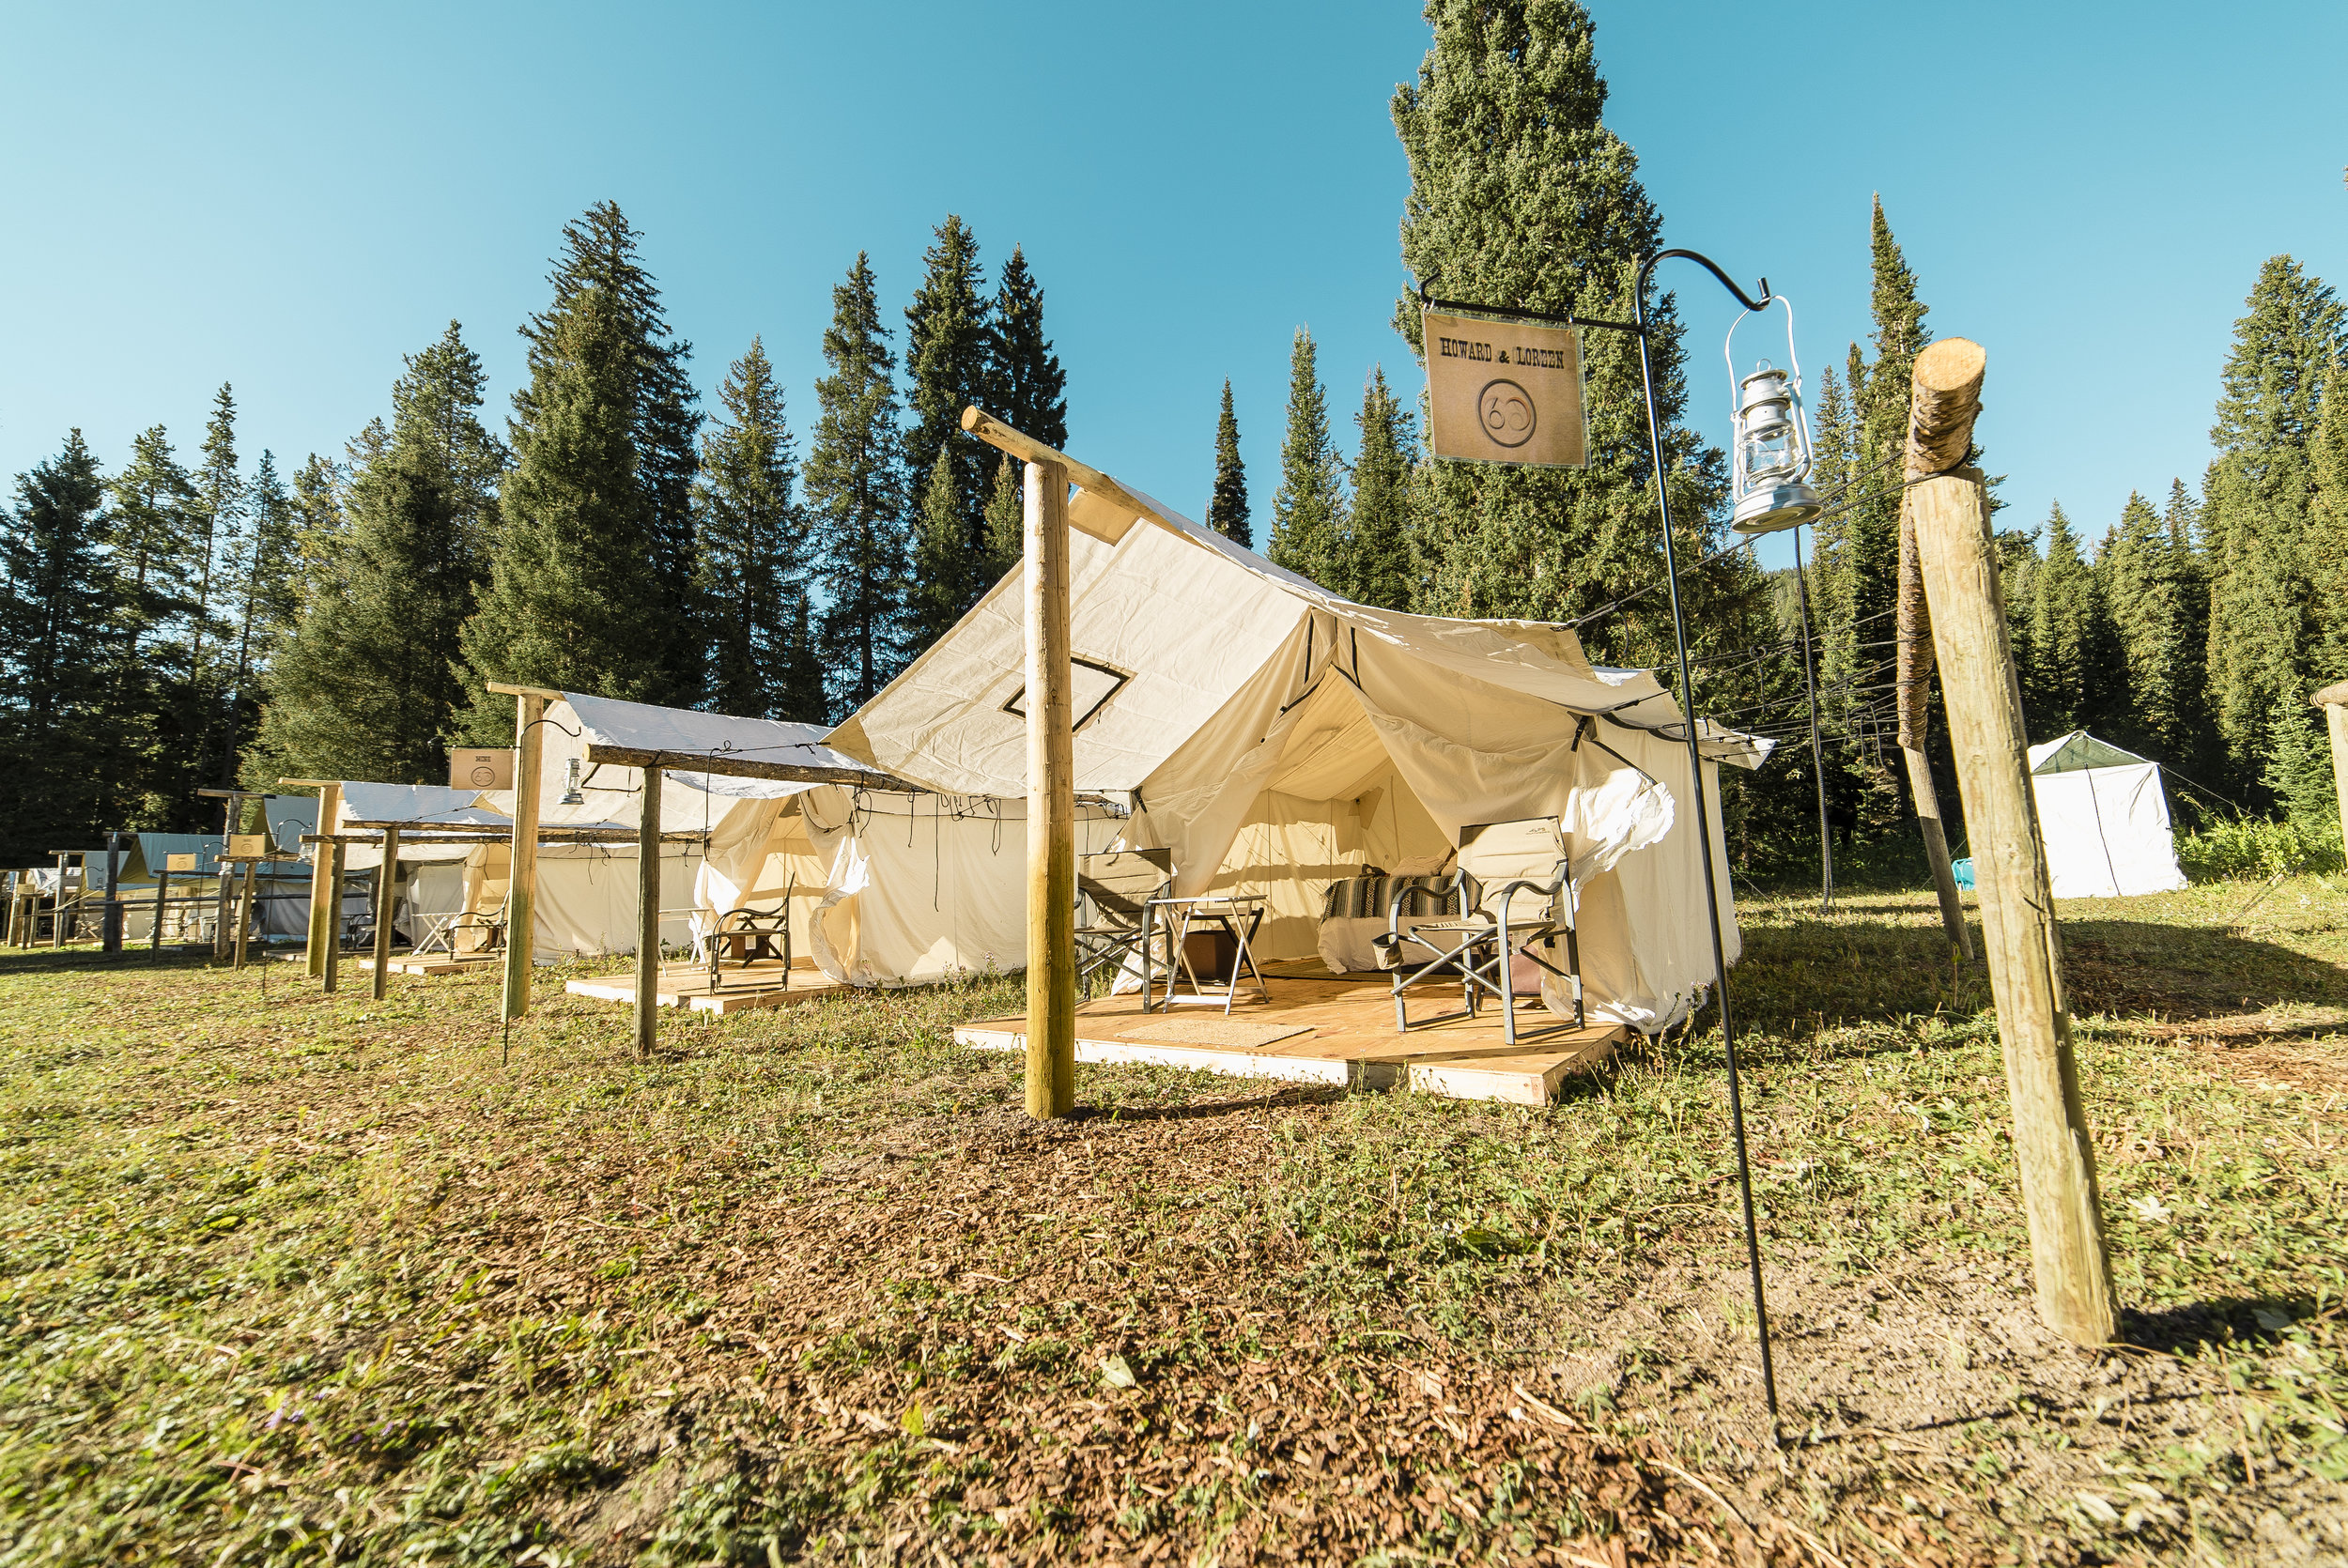 The incredible tents set up for each guest at the camp. Bath houses seen in the background.